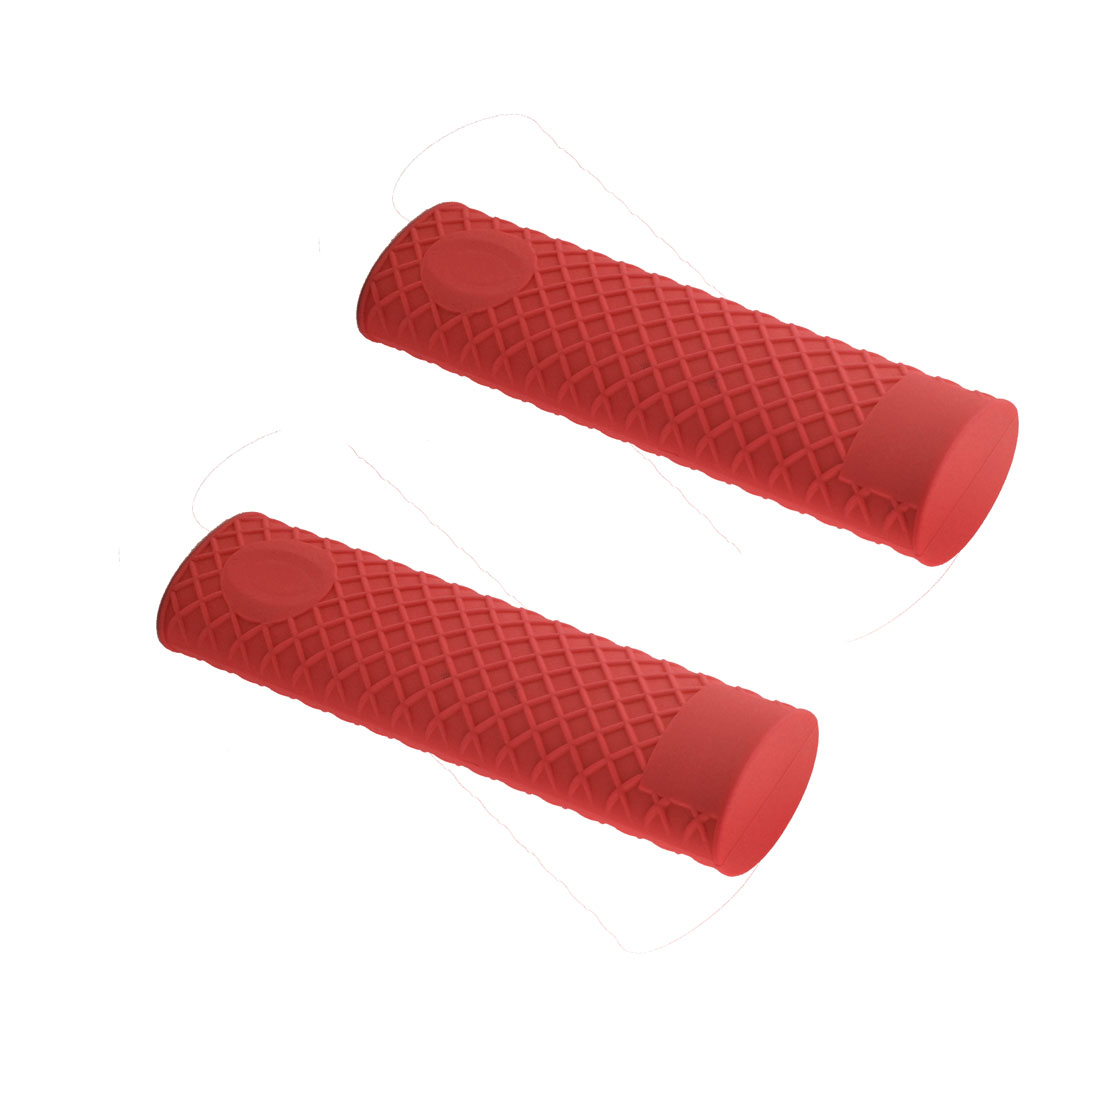 Kitchen Heat Resistant Silicone Pot Pan Handle Grip Holder Sleeve Cover Red 2pcs